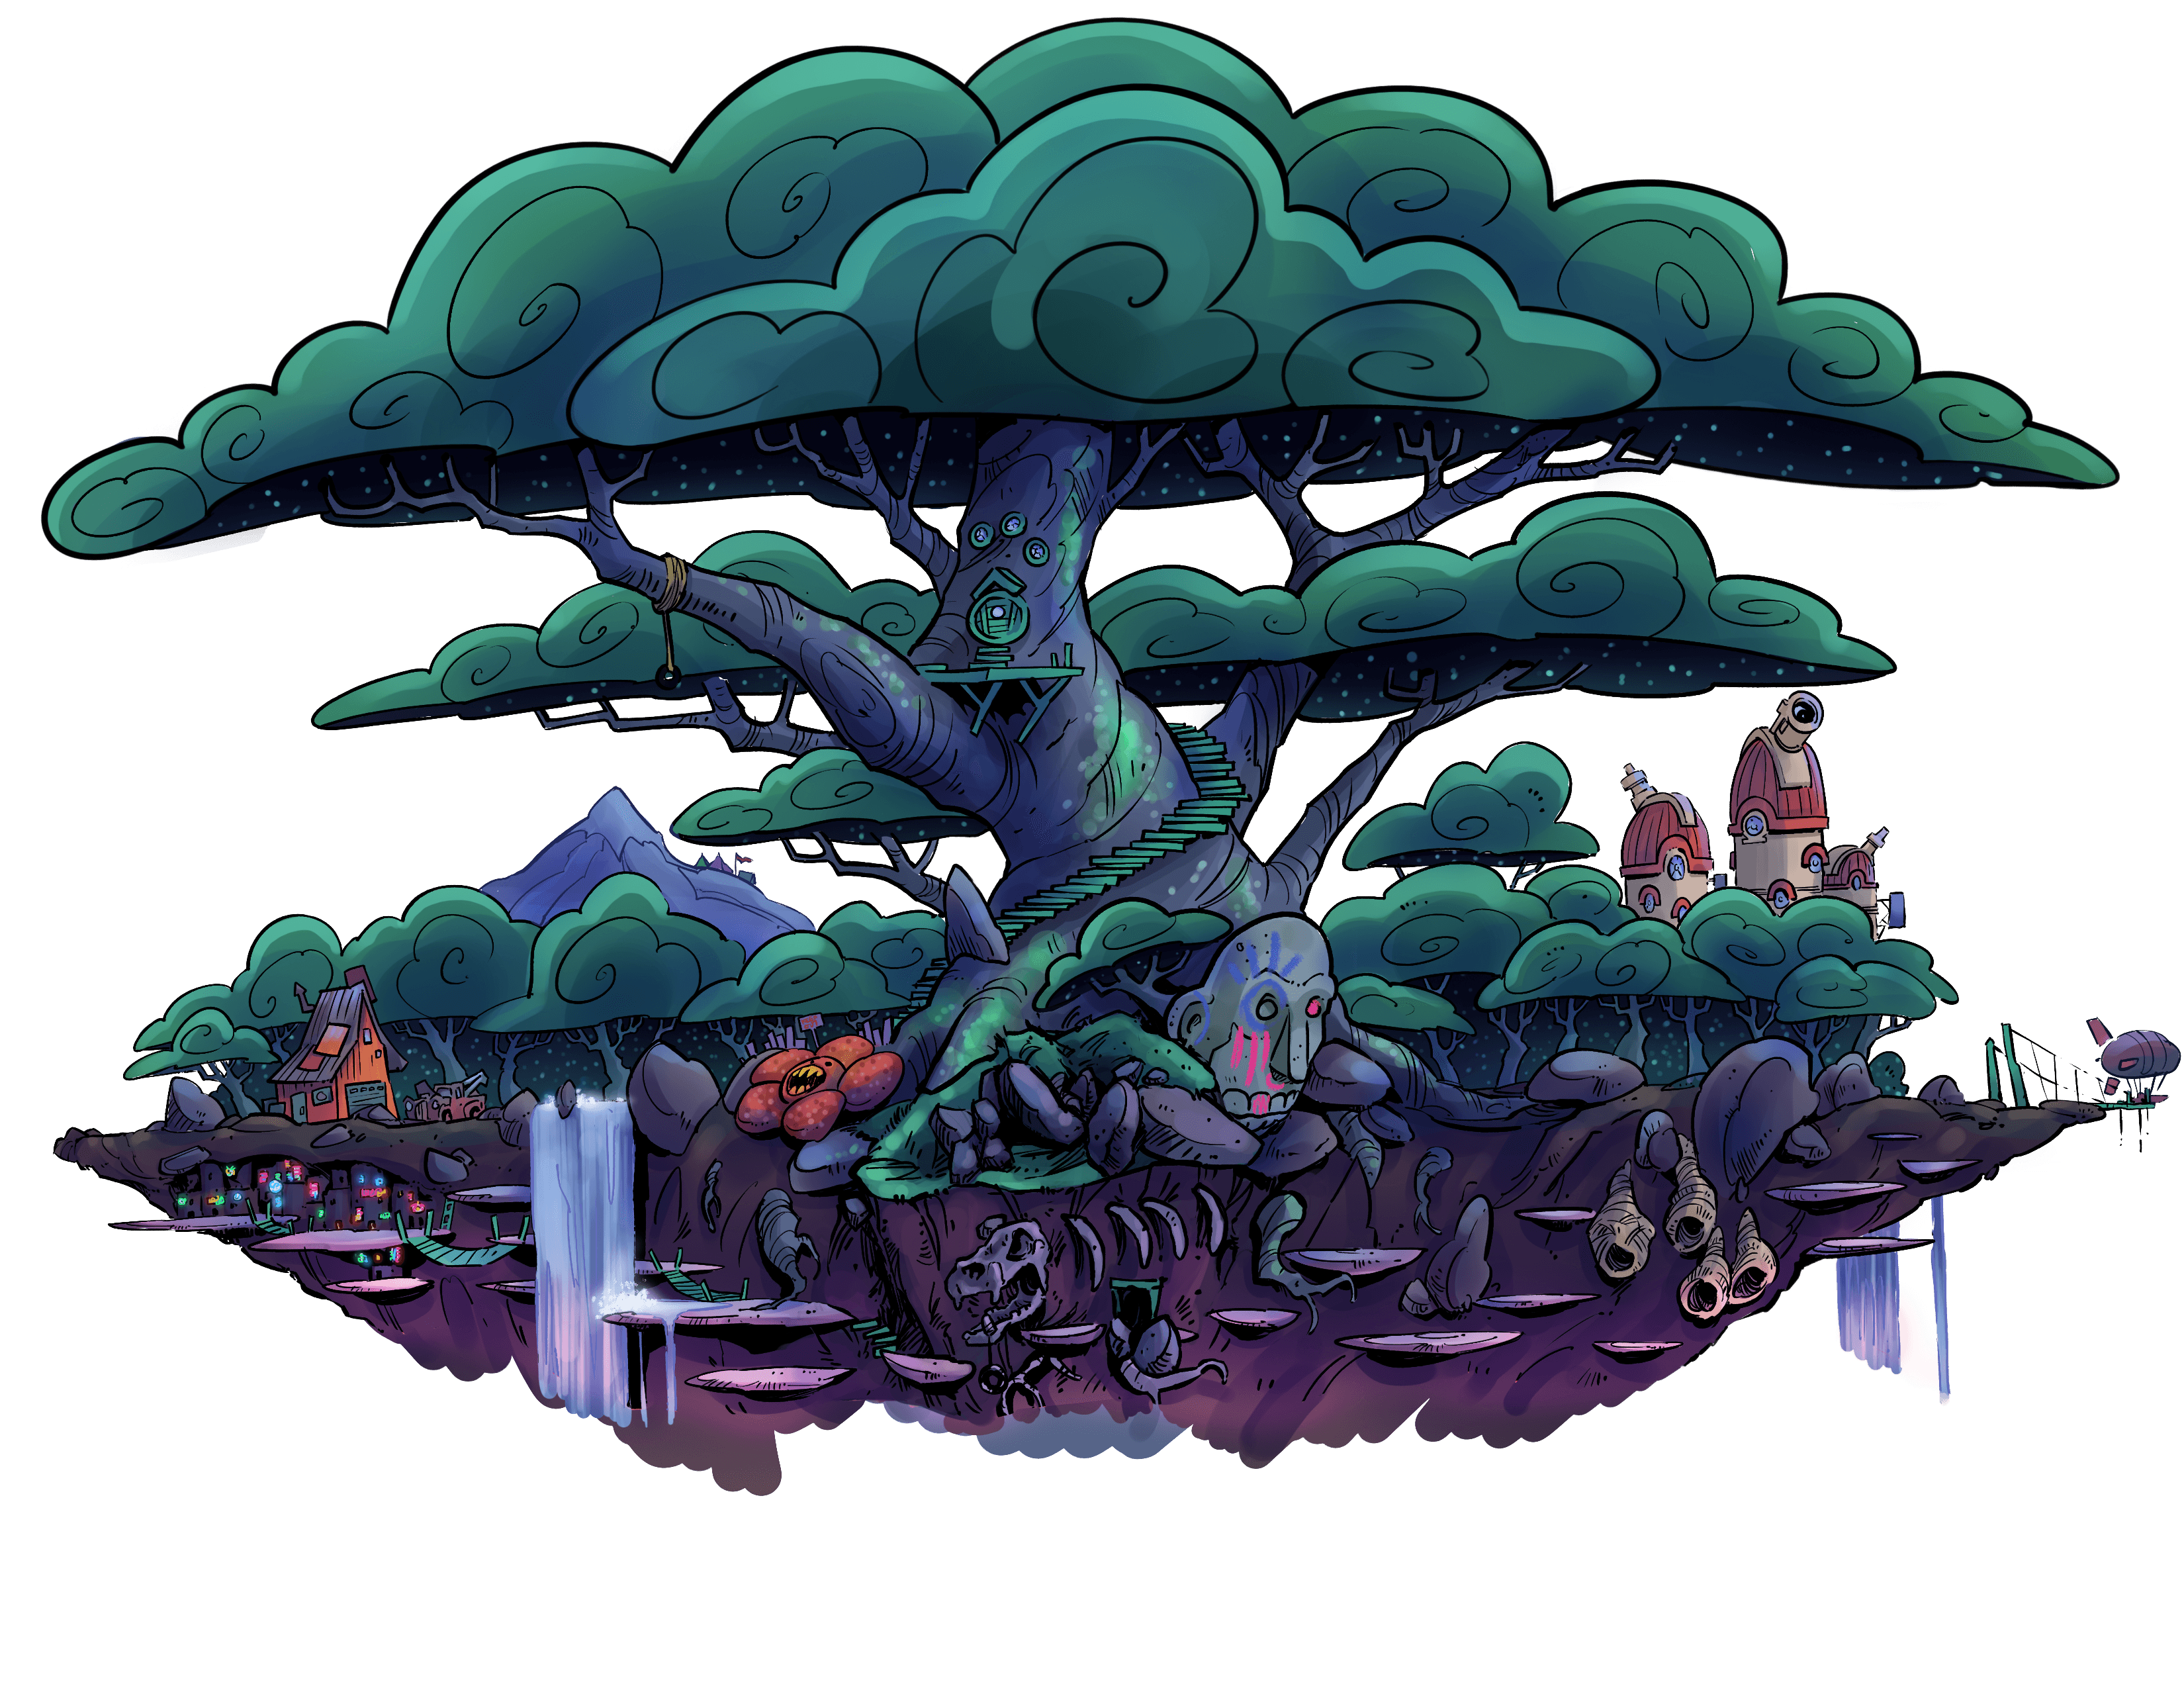 The Star Forest island floating in the sky surrounded by pink clouds that part as you get closer.  Flitting around are Star Slugs glowing blue, waiting to greet you.